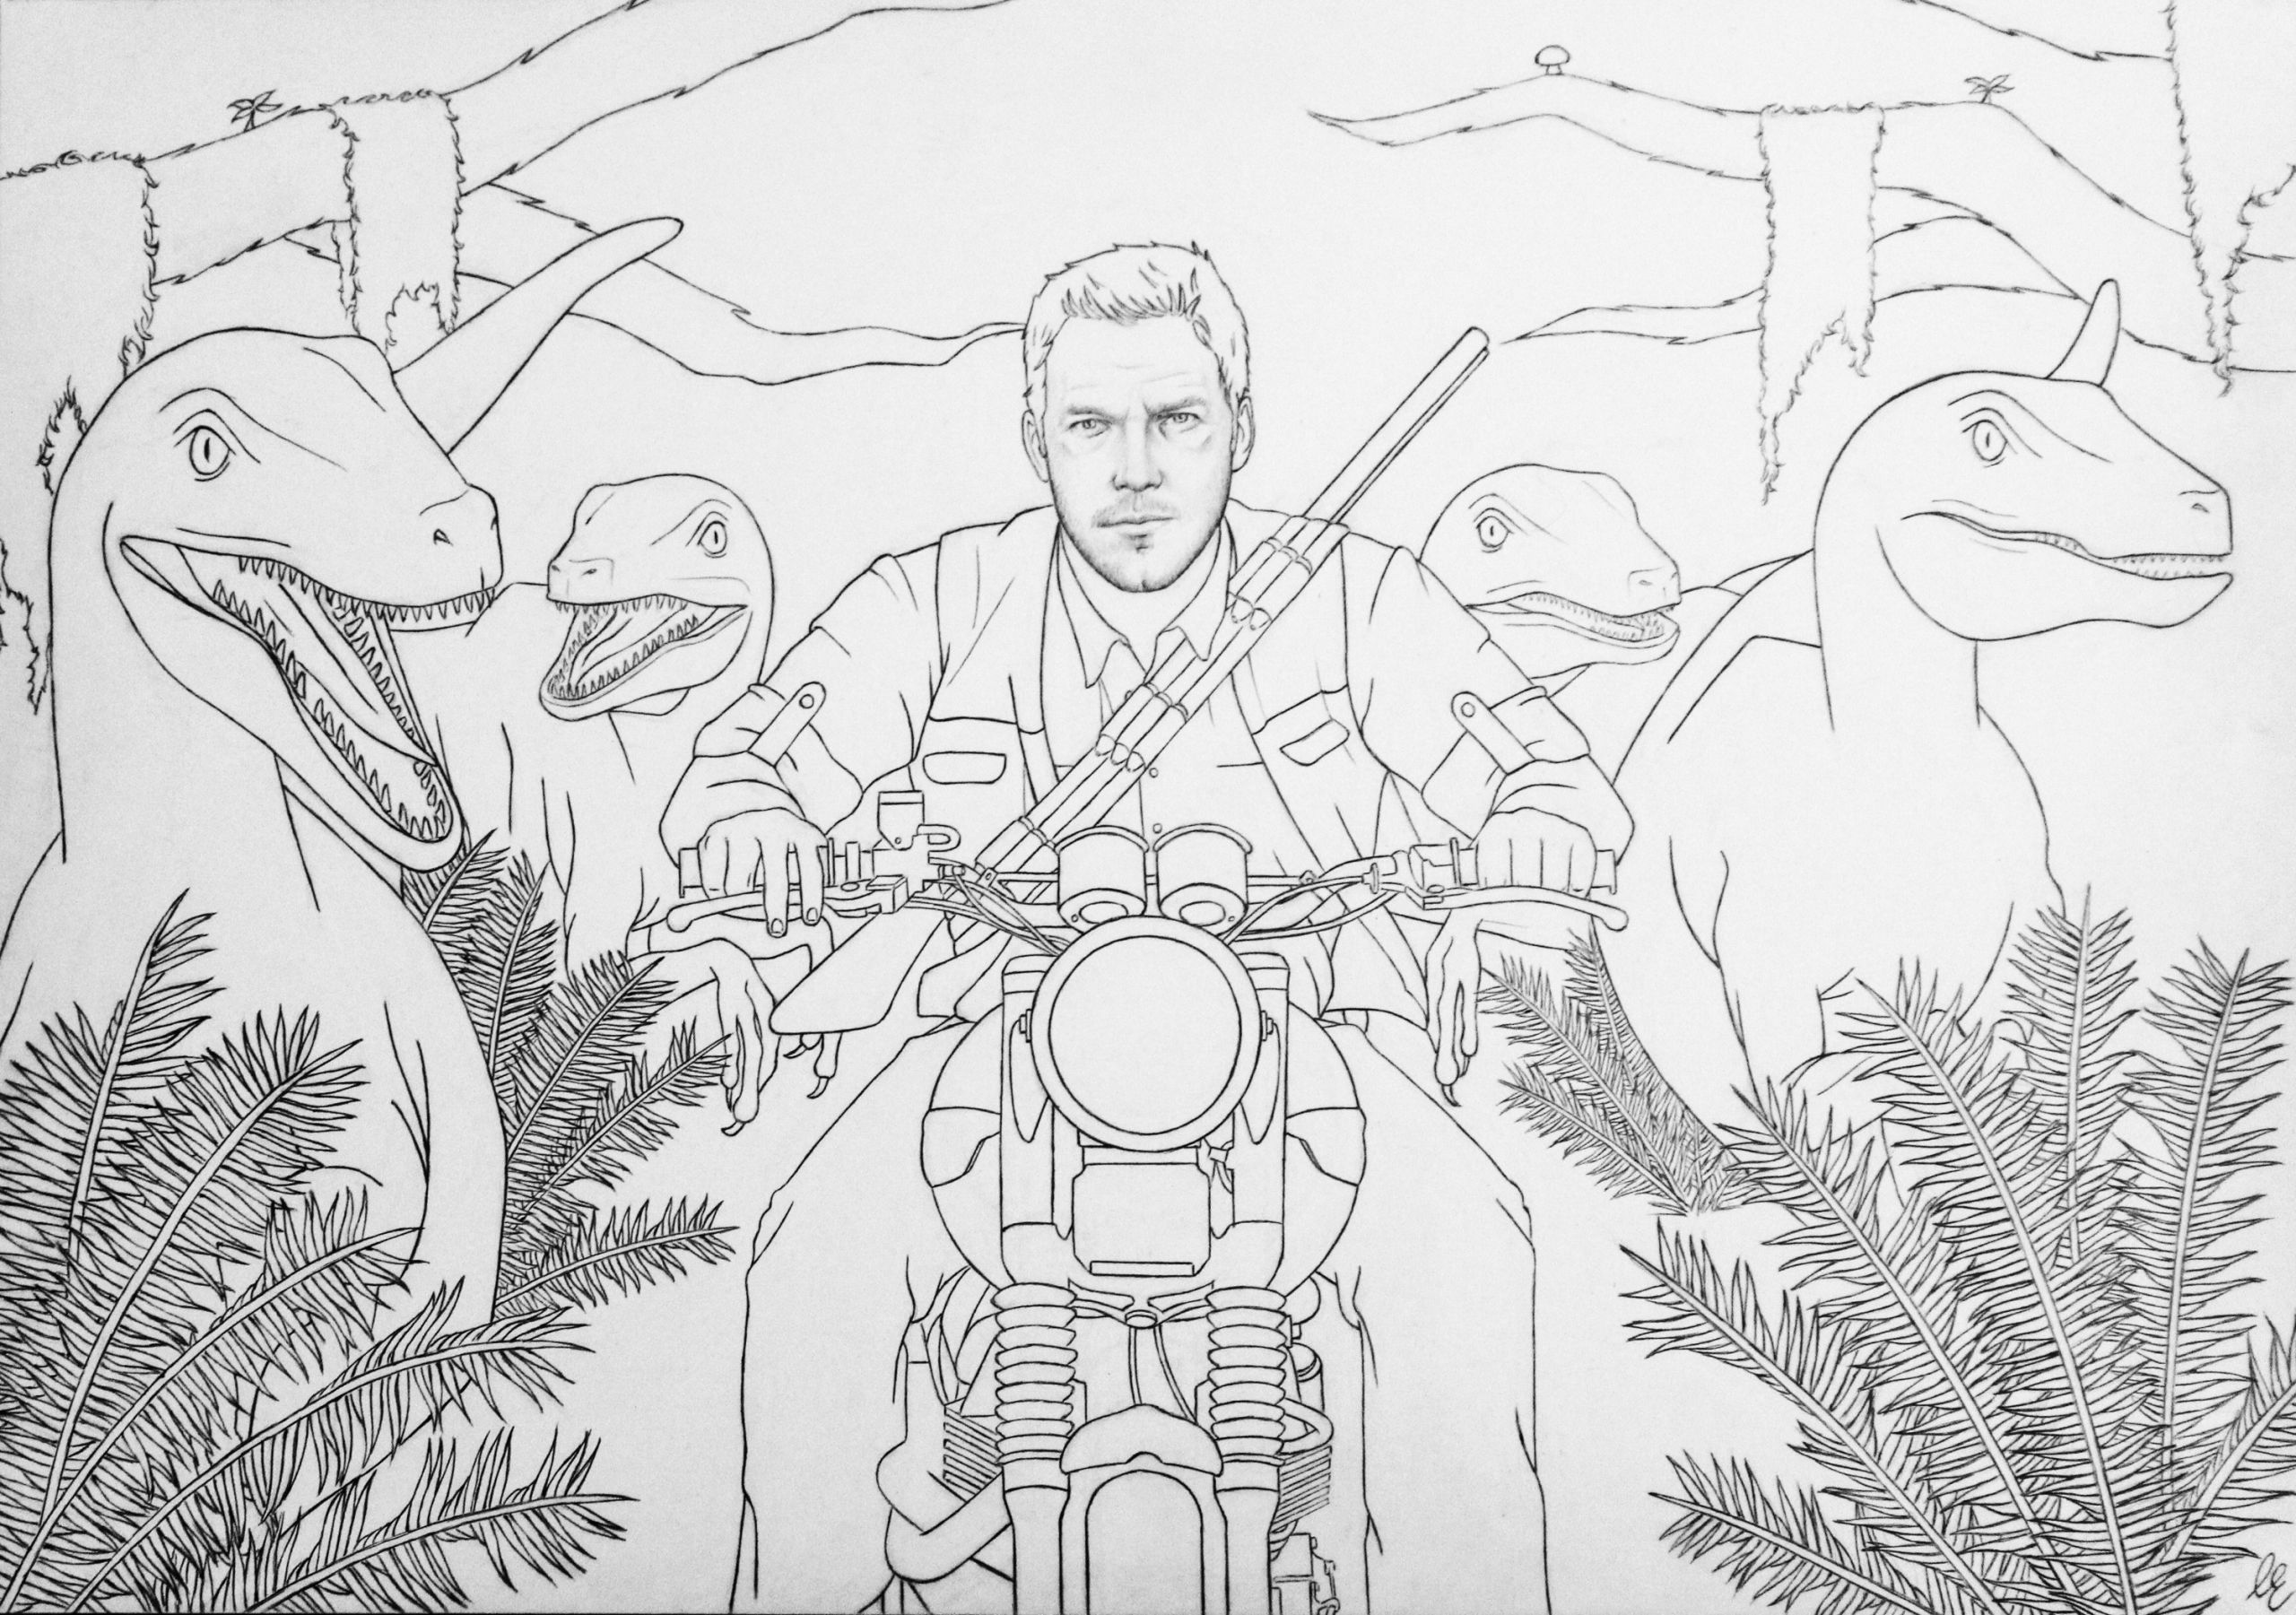 Jurassic Park Coloring Page Fresh Coloring Page Jurassic World Dinosaur Coloring Pages Dinosaur Coloring Coloring Pages